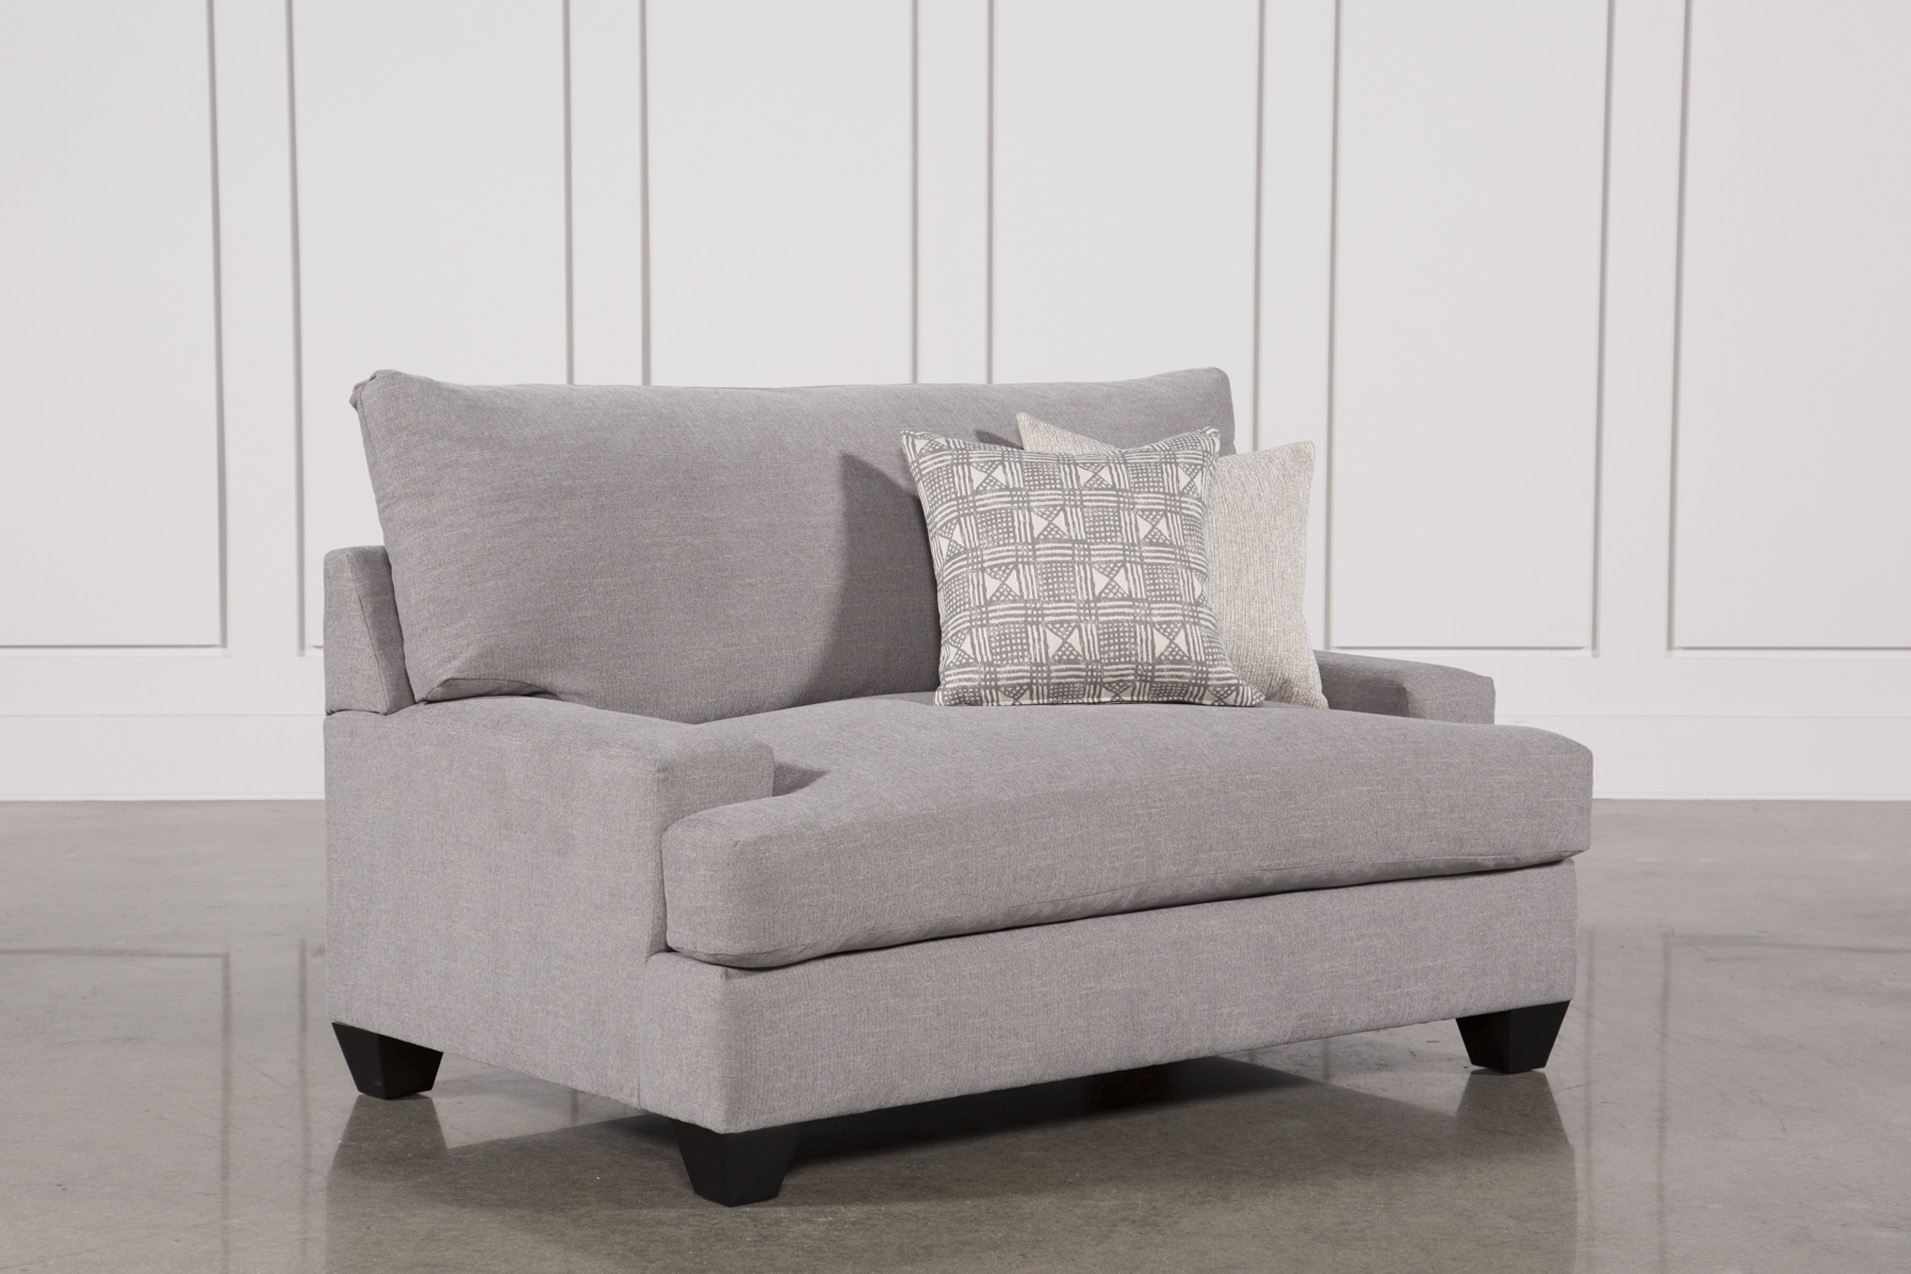 Harper Down Oversized Chair (Qty: 1) Has Been Successfully Added To Your  Cart.